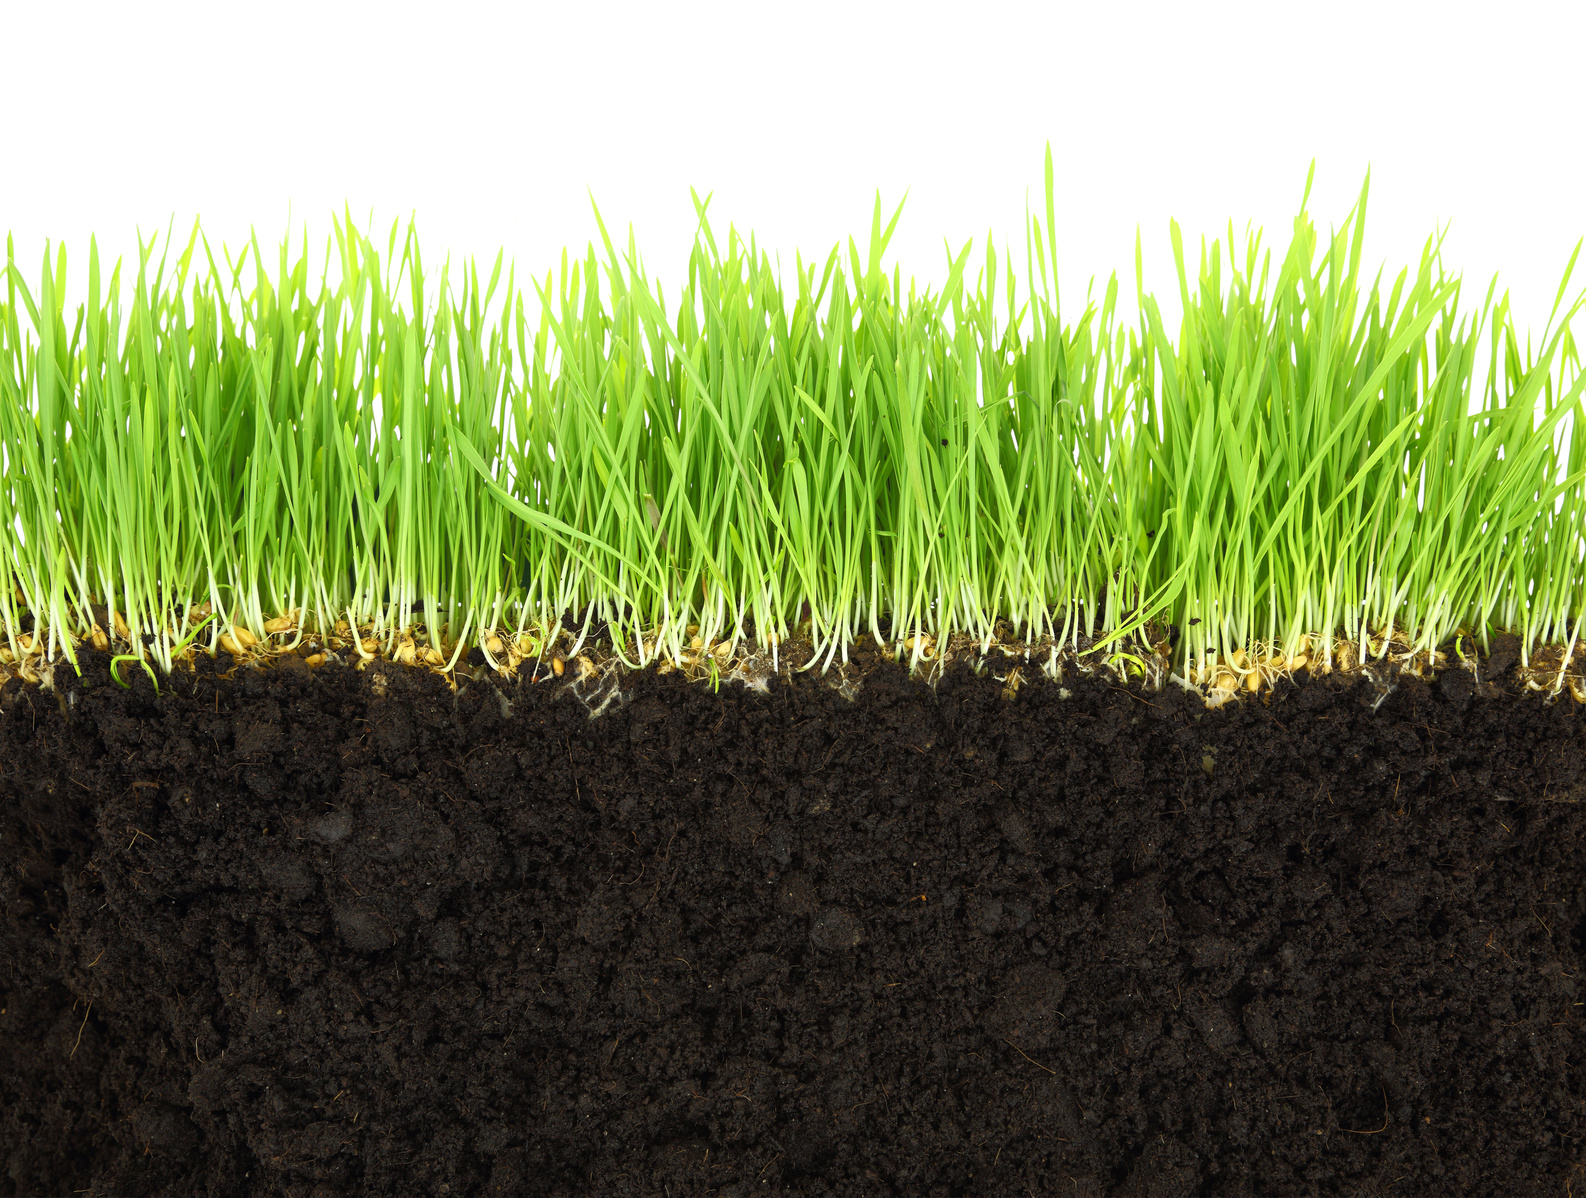 symbolic image of turf with grass sward and soil